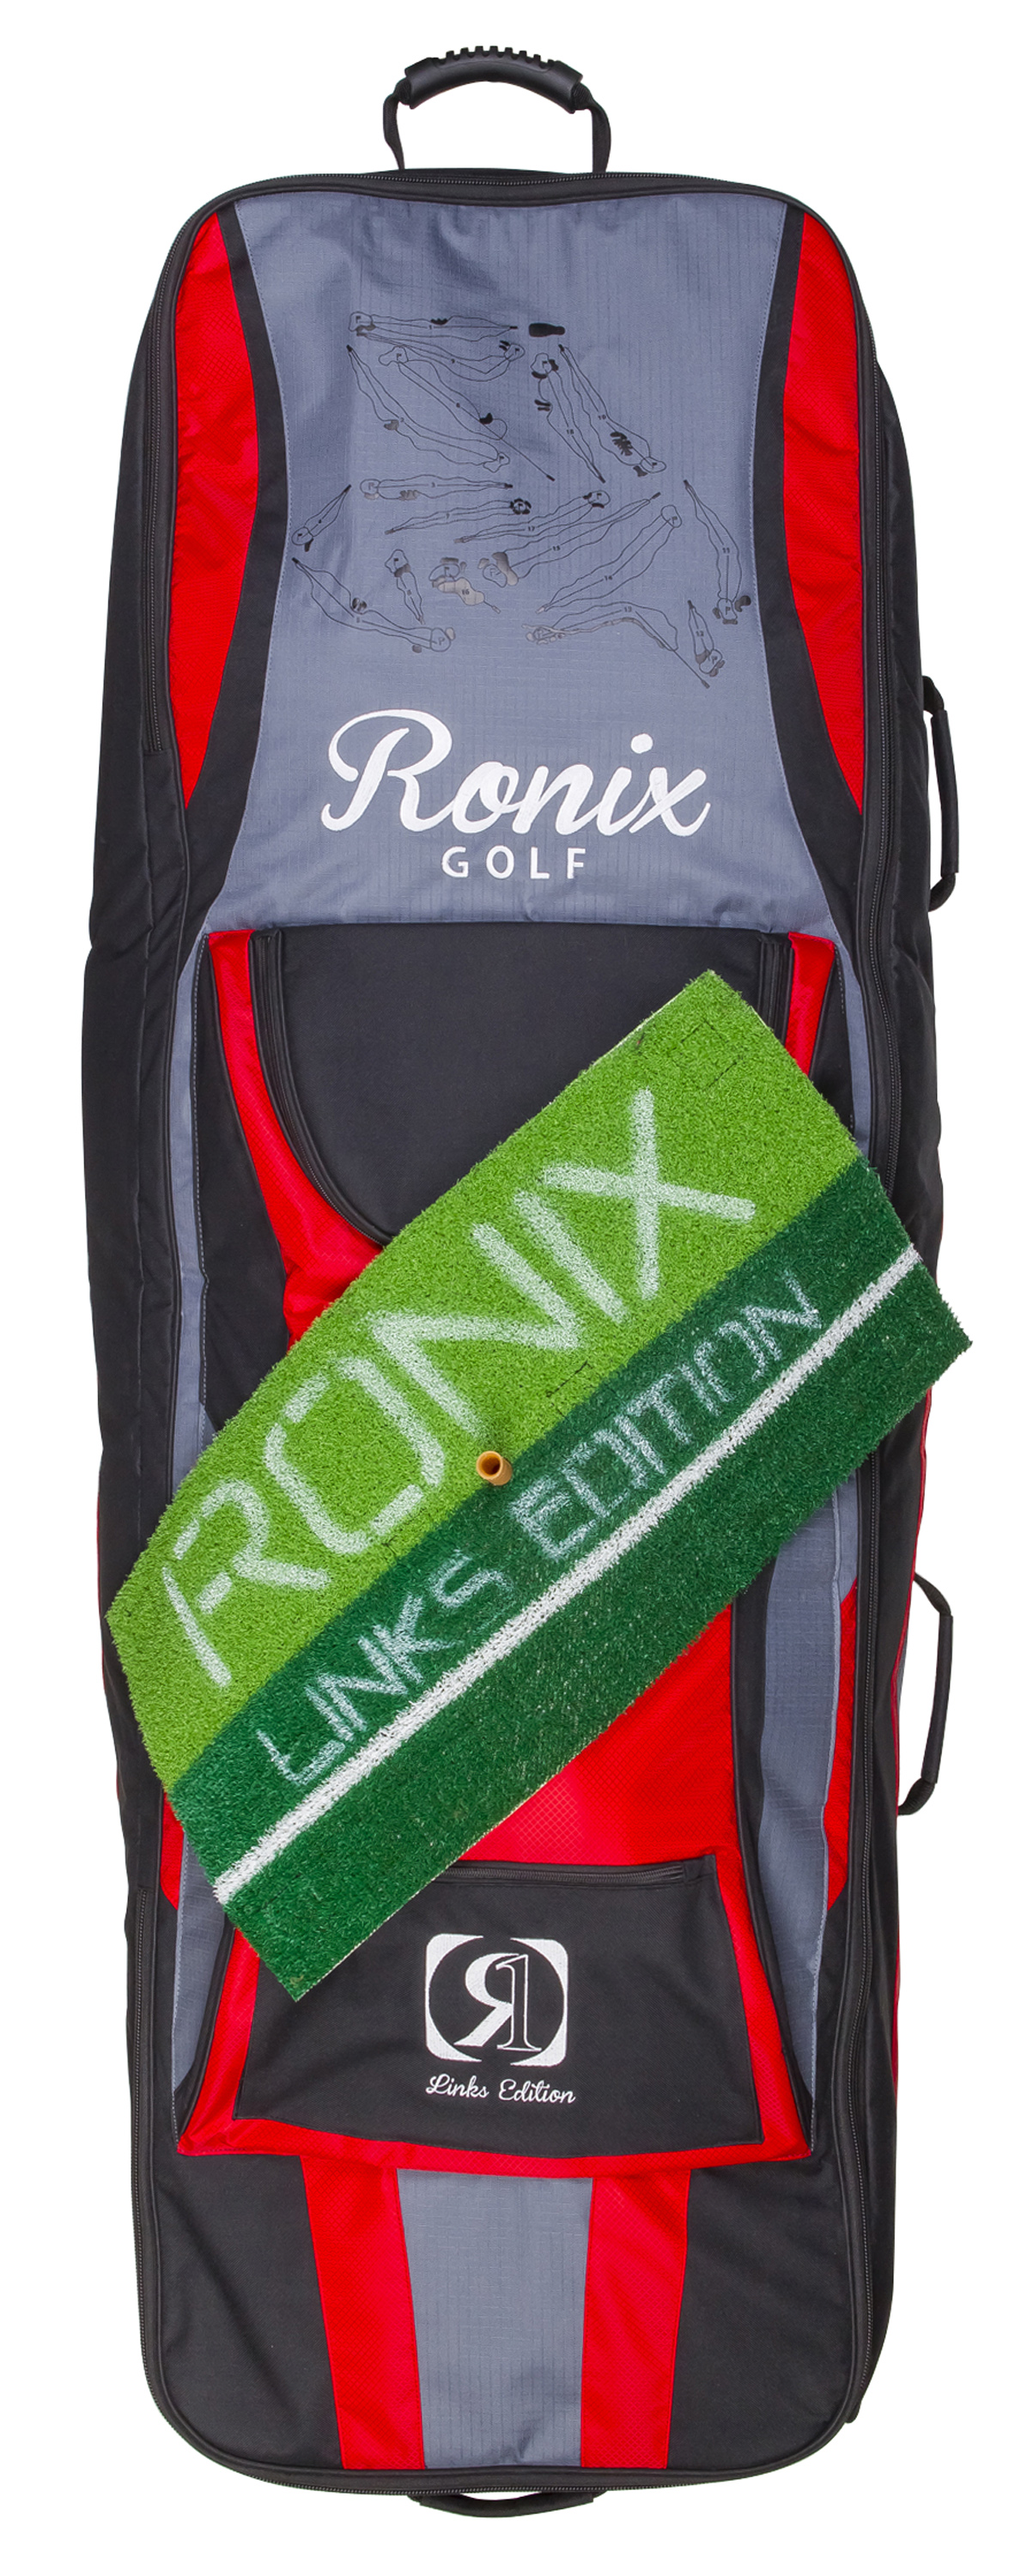 LINKS PADDED WHEELIE BAG RONIX 2016